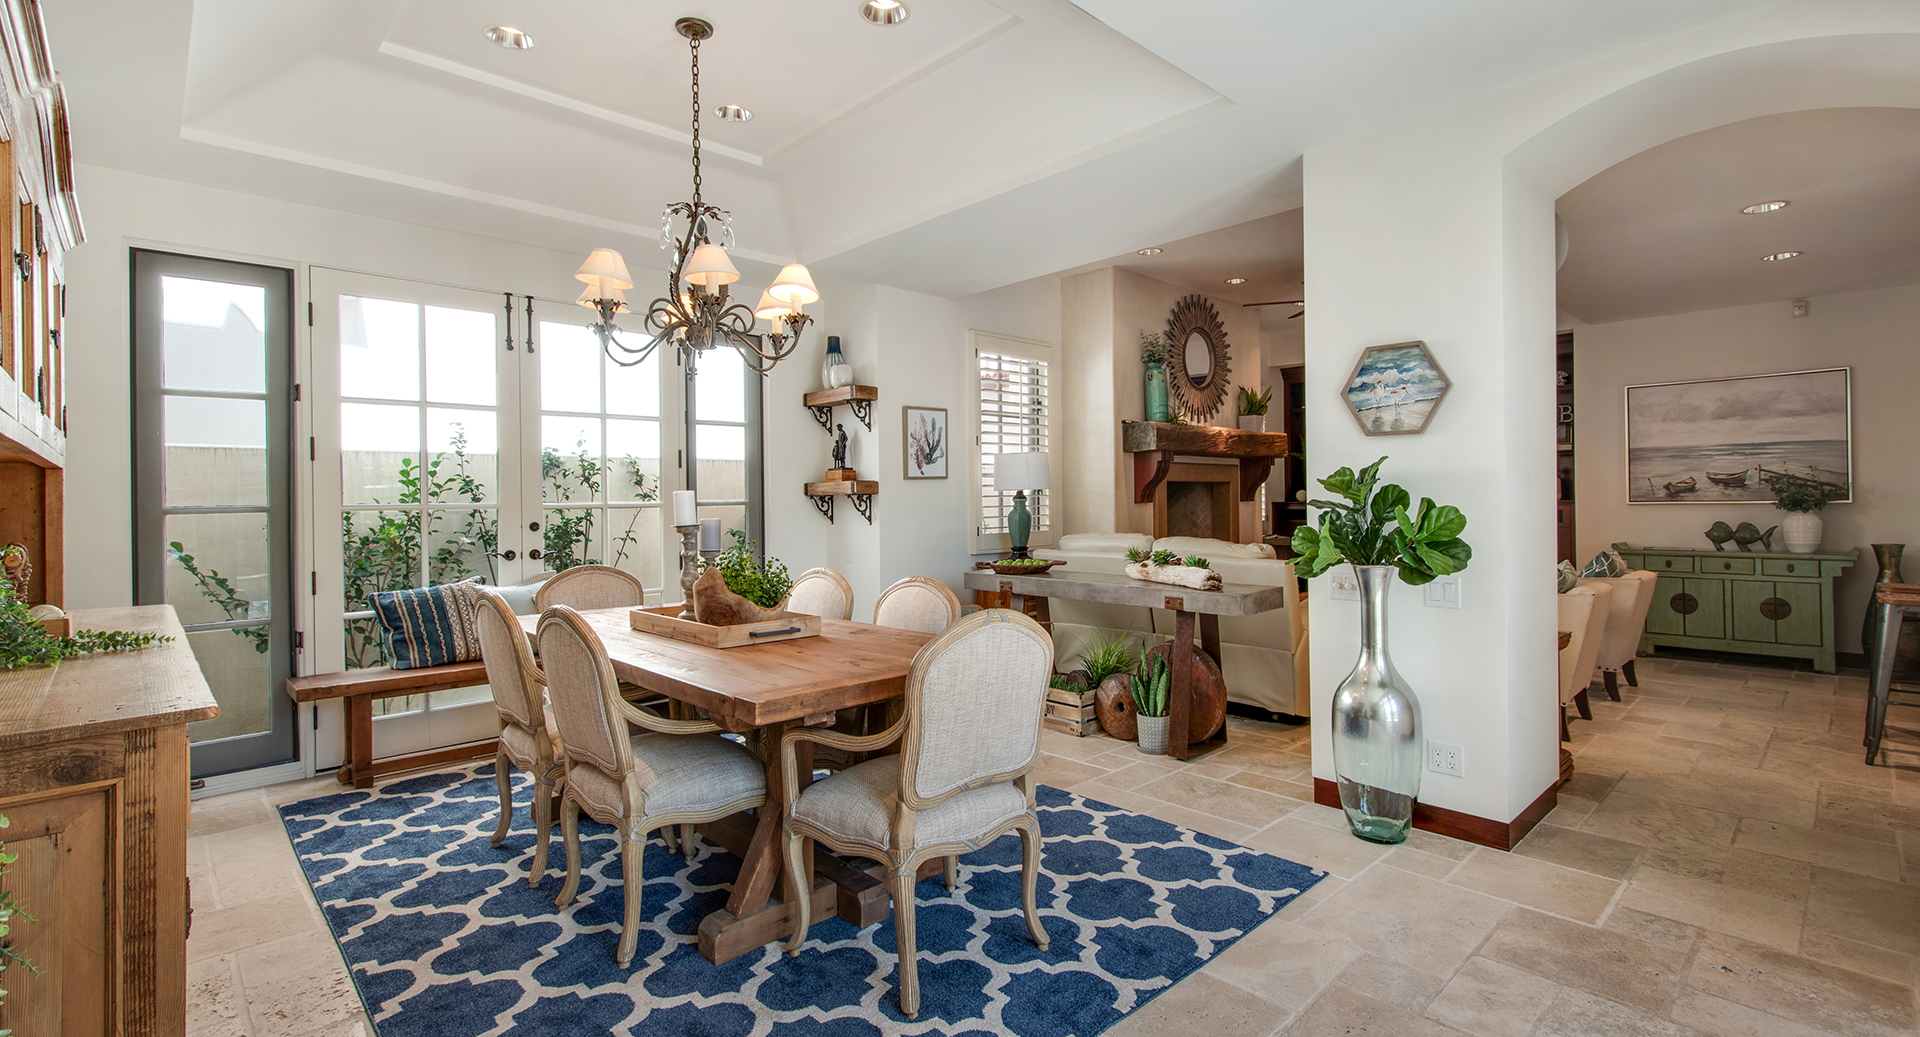 Best Dining Rooms to Bring Family Together